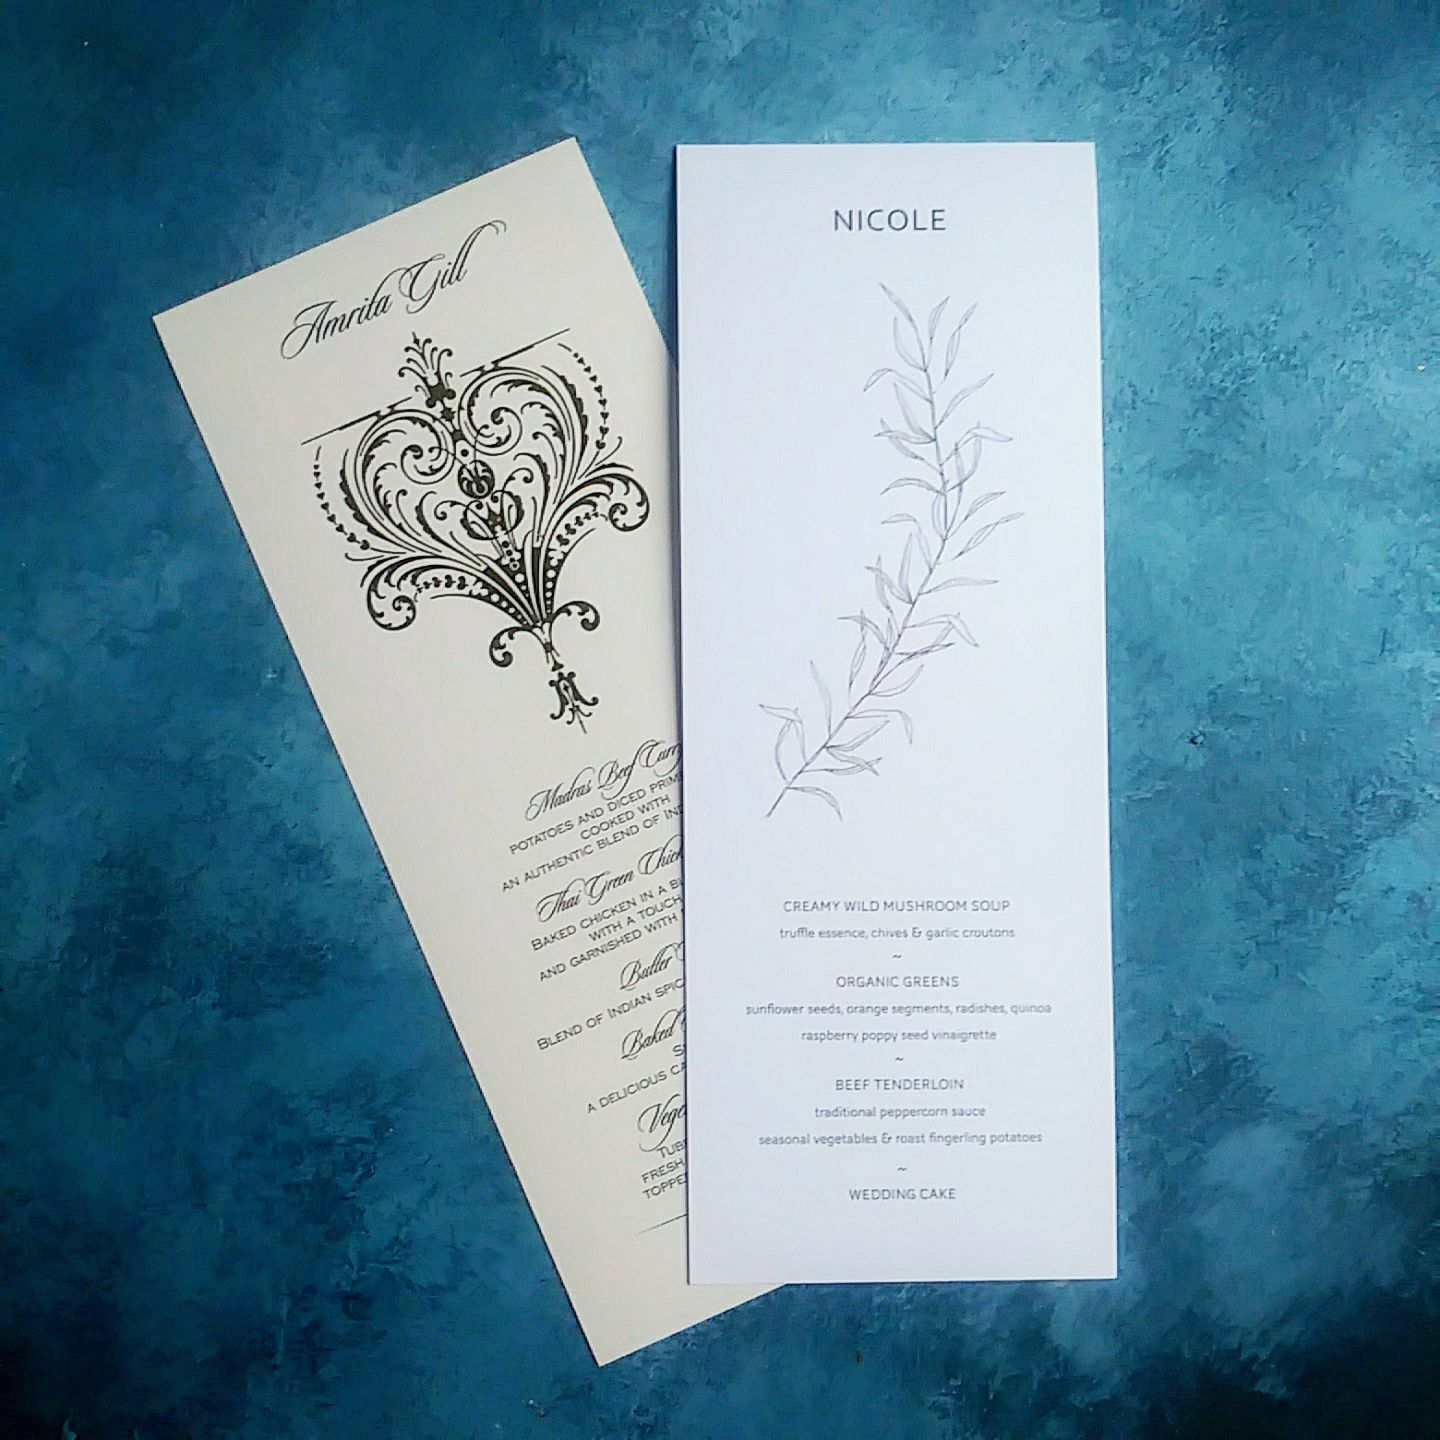 Place card and menu in one